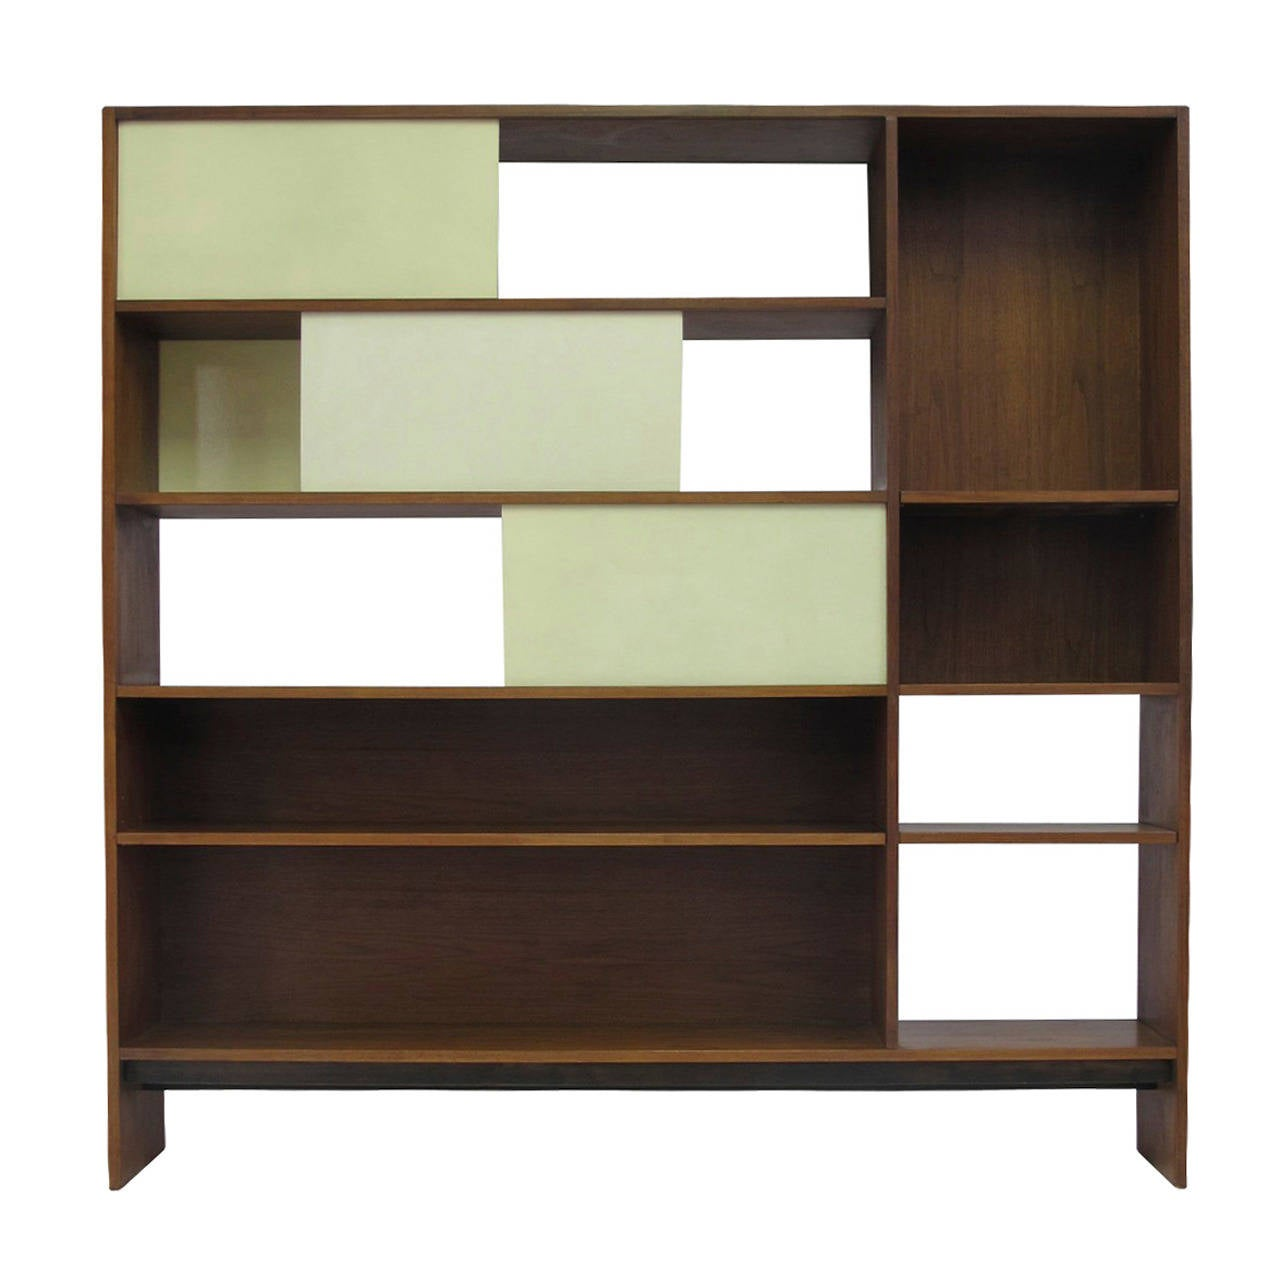 Walnut room divider bookcase at 1stdibs - Bookshelves as room divider ...